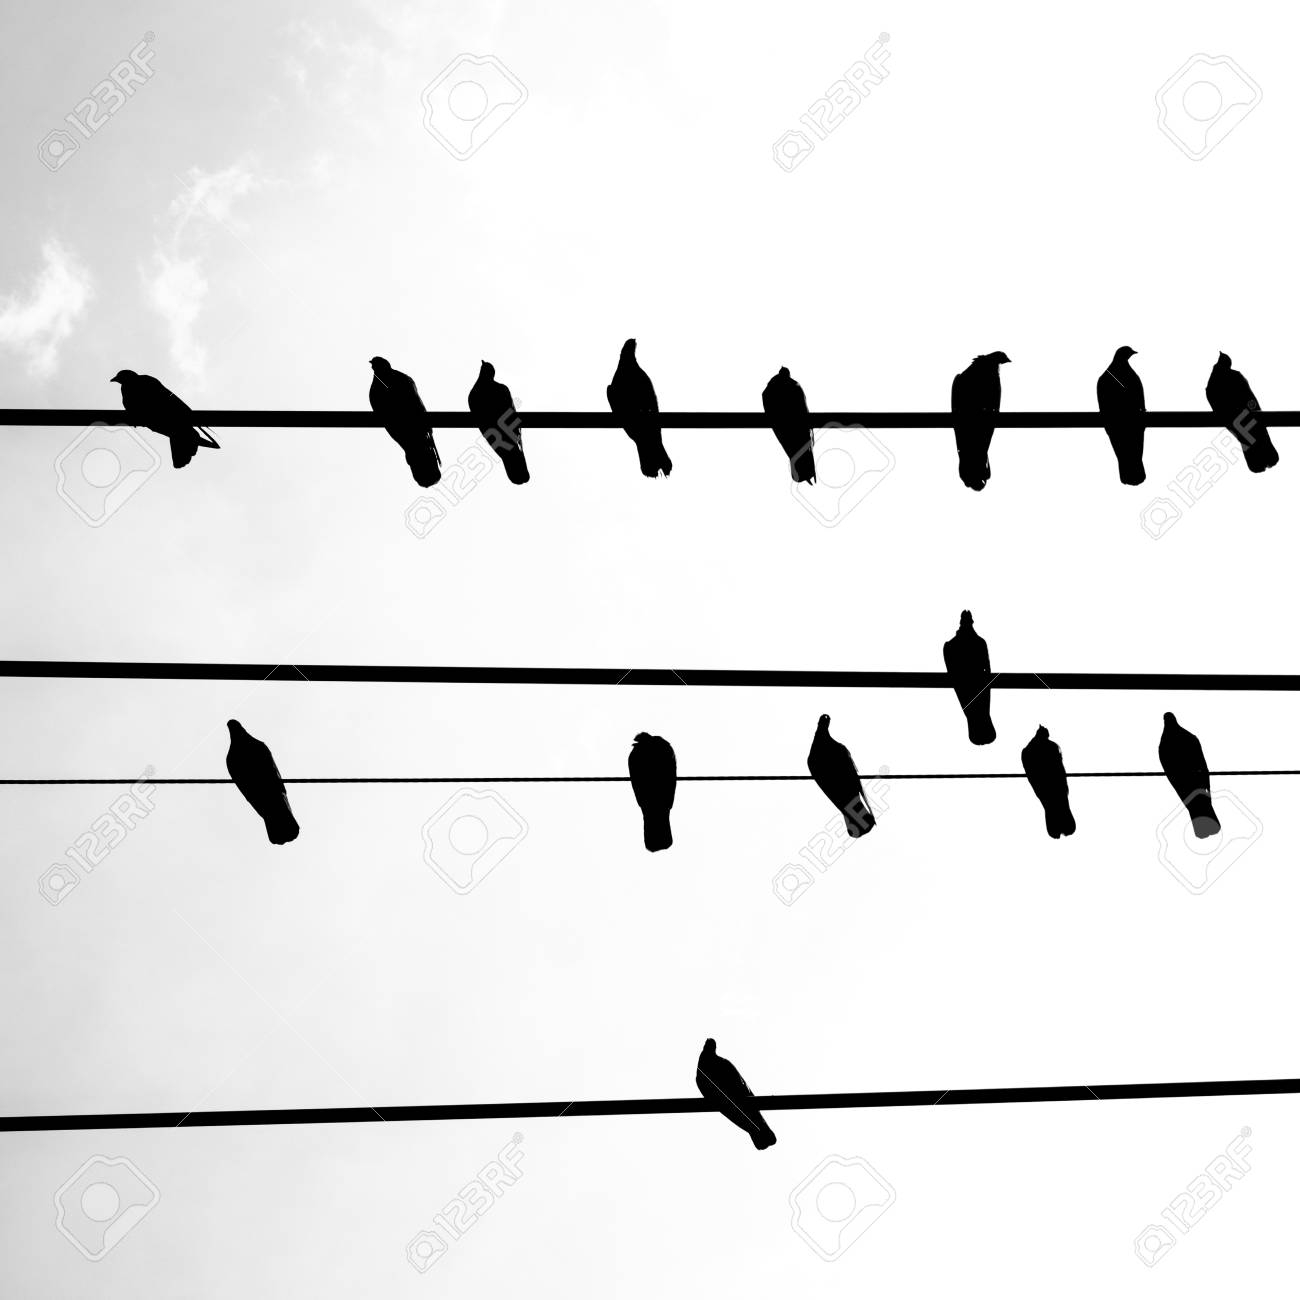 A Silhouette Of Birds On A Telephone Wire. Stock Photo, Picture And ...